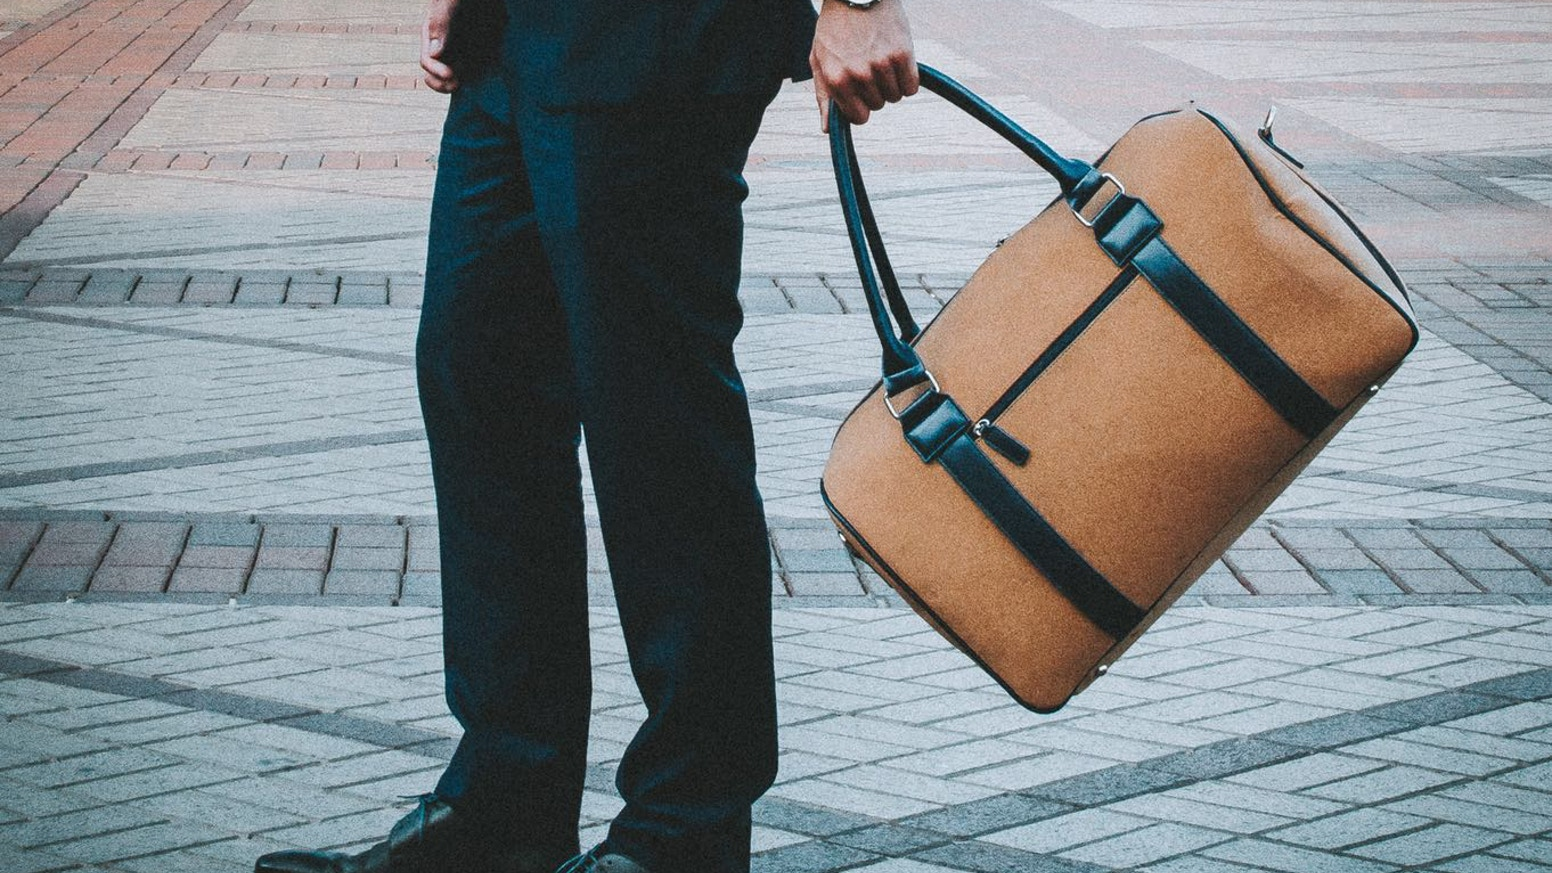 Mi Terro CDS: The world's first premium cork duffle suitcase